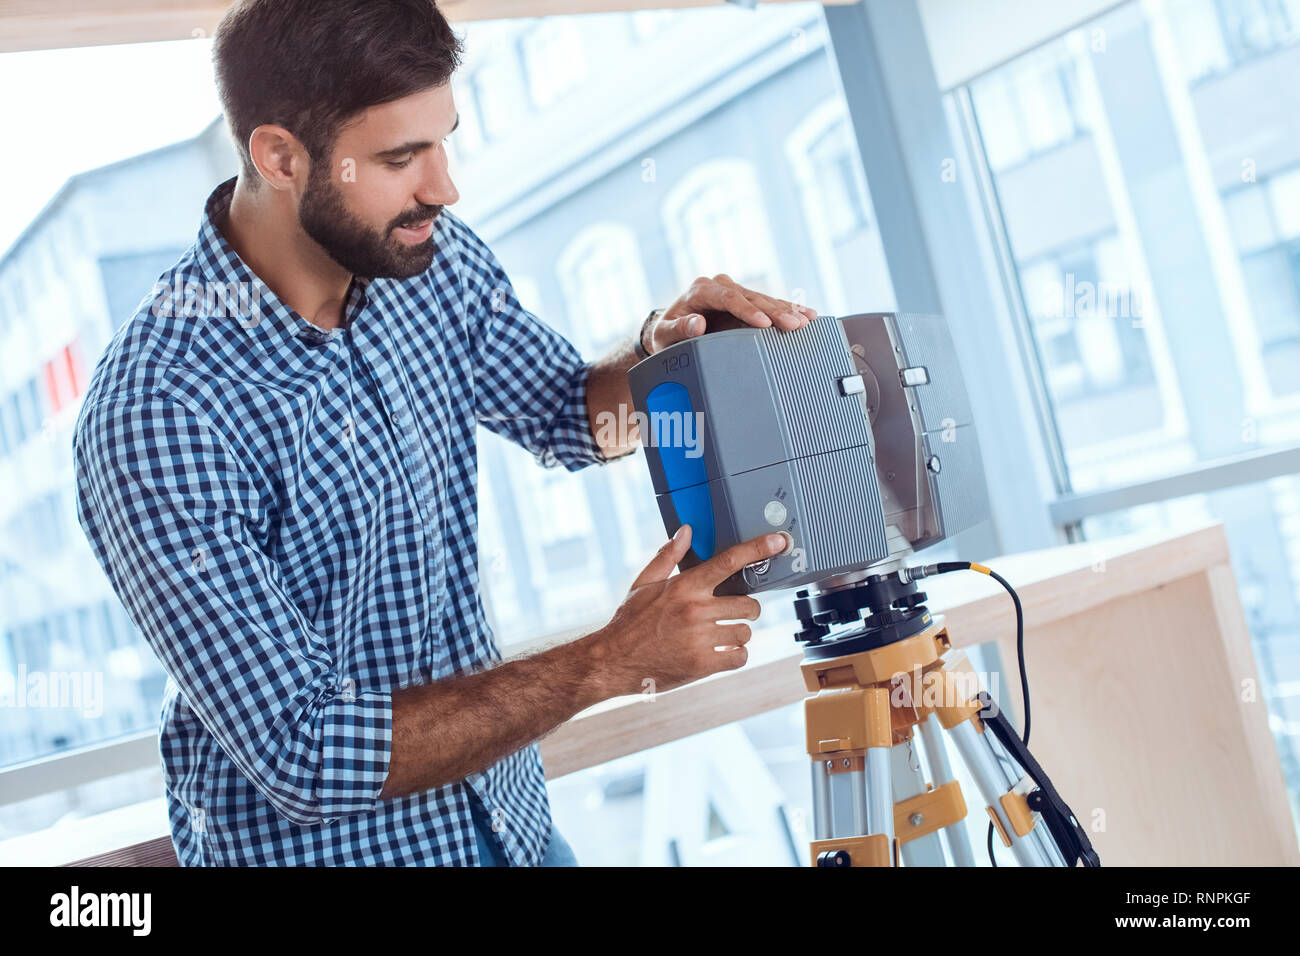 Bussiness person work in the office career laser scanner - Stock Image